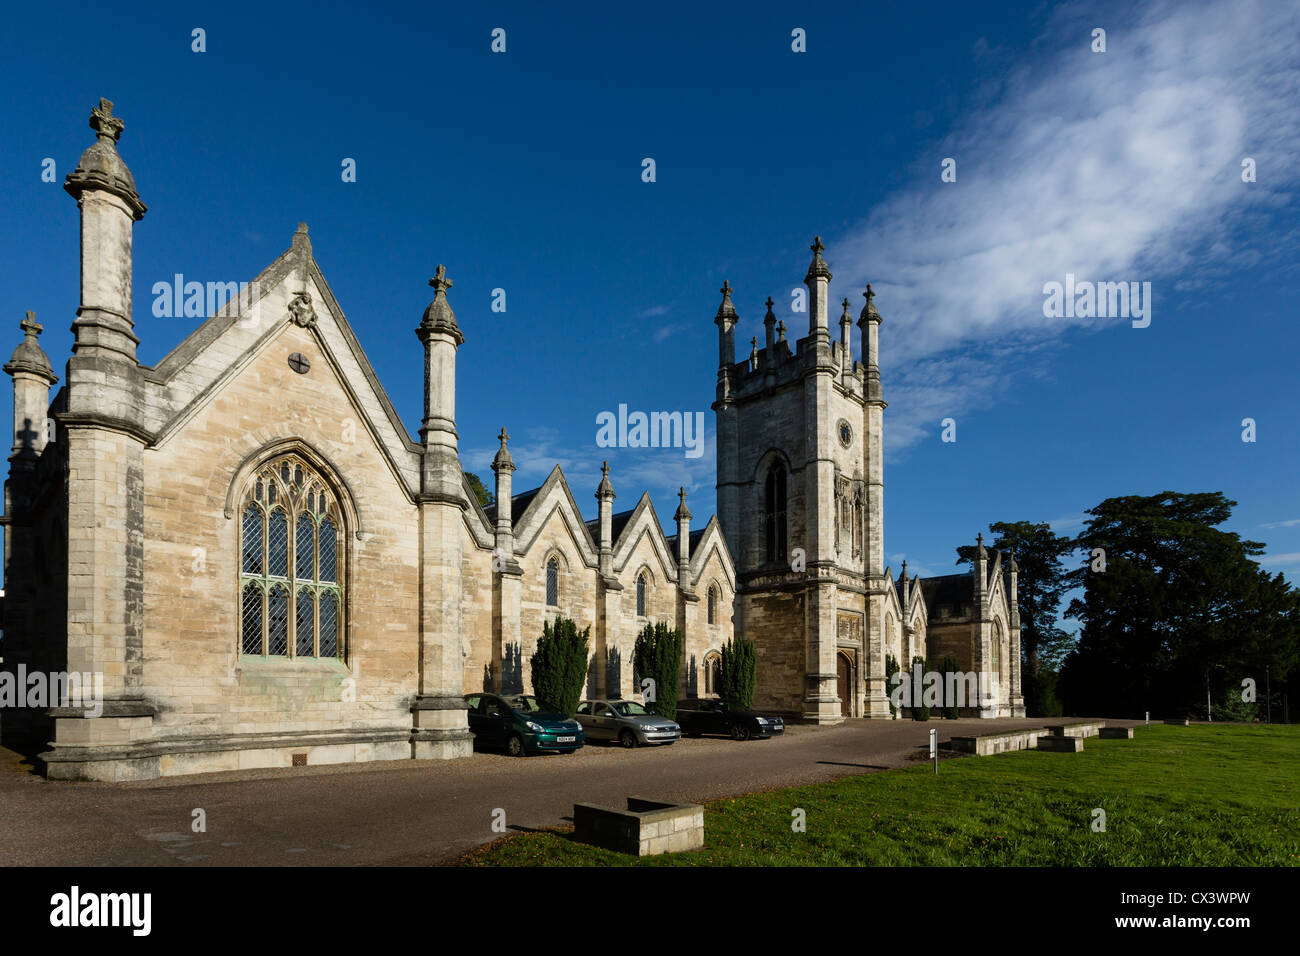 The Aberford Almshouses, situated between Leeds and York, were built by sisters Mary and Elizabeth Gascoigne in Stock Photo